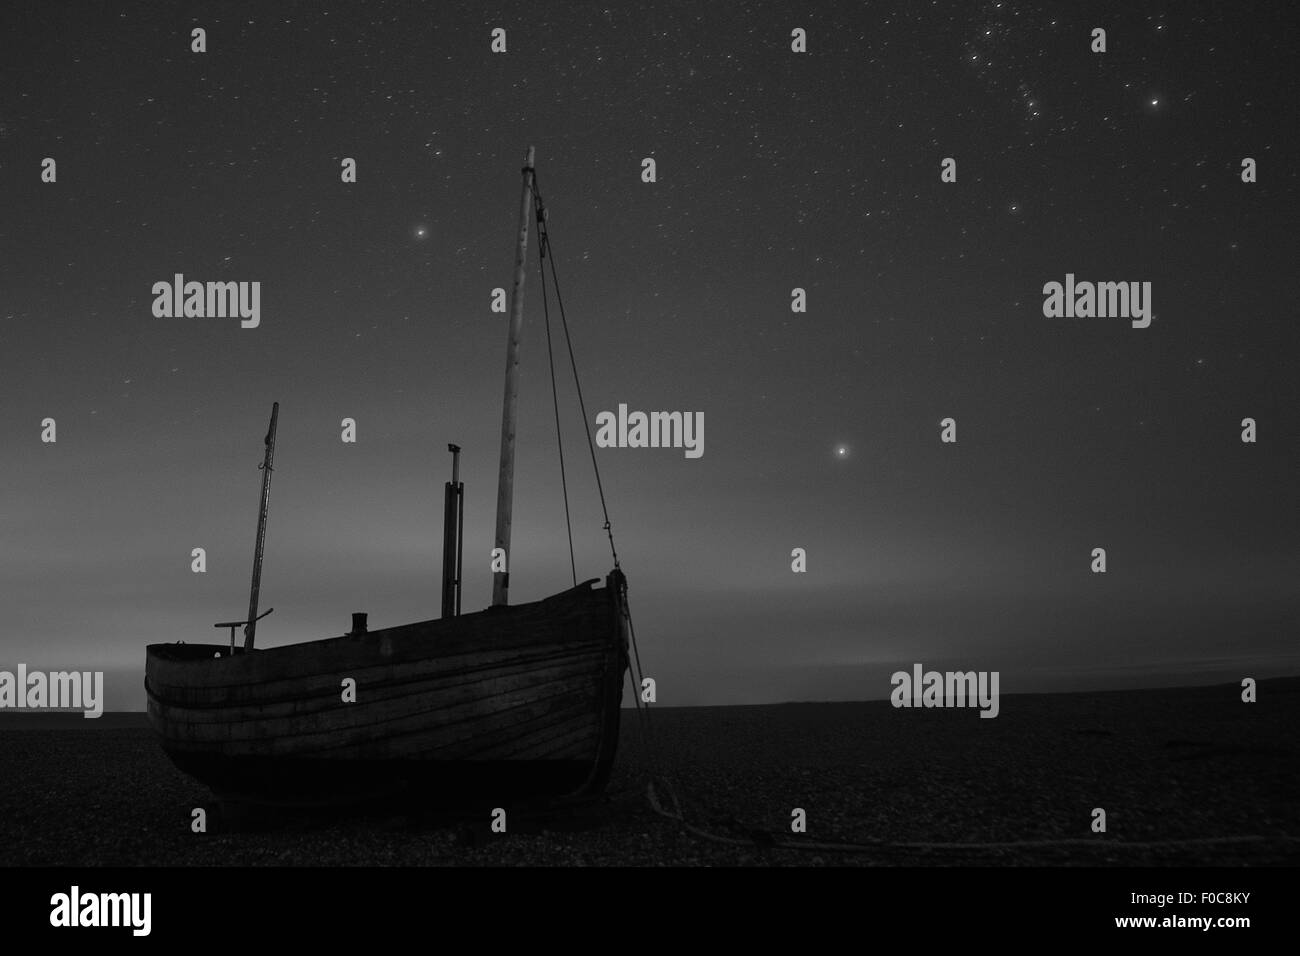 A wooden boat is seen on the beach at night, under a blanket of stars, in Dungeness, Kent, England, in black and - Stock Image